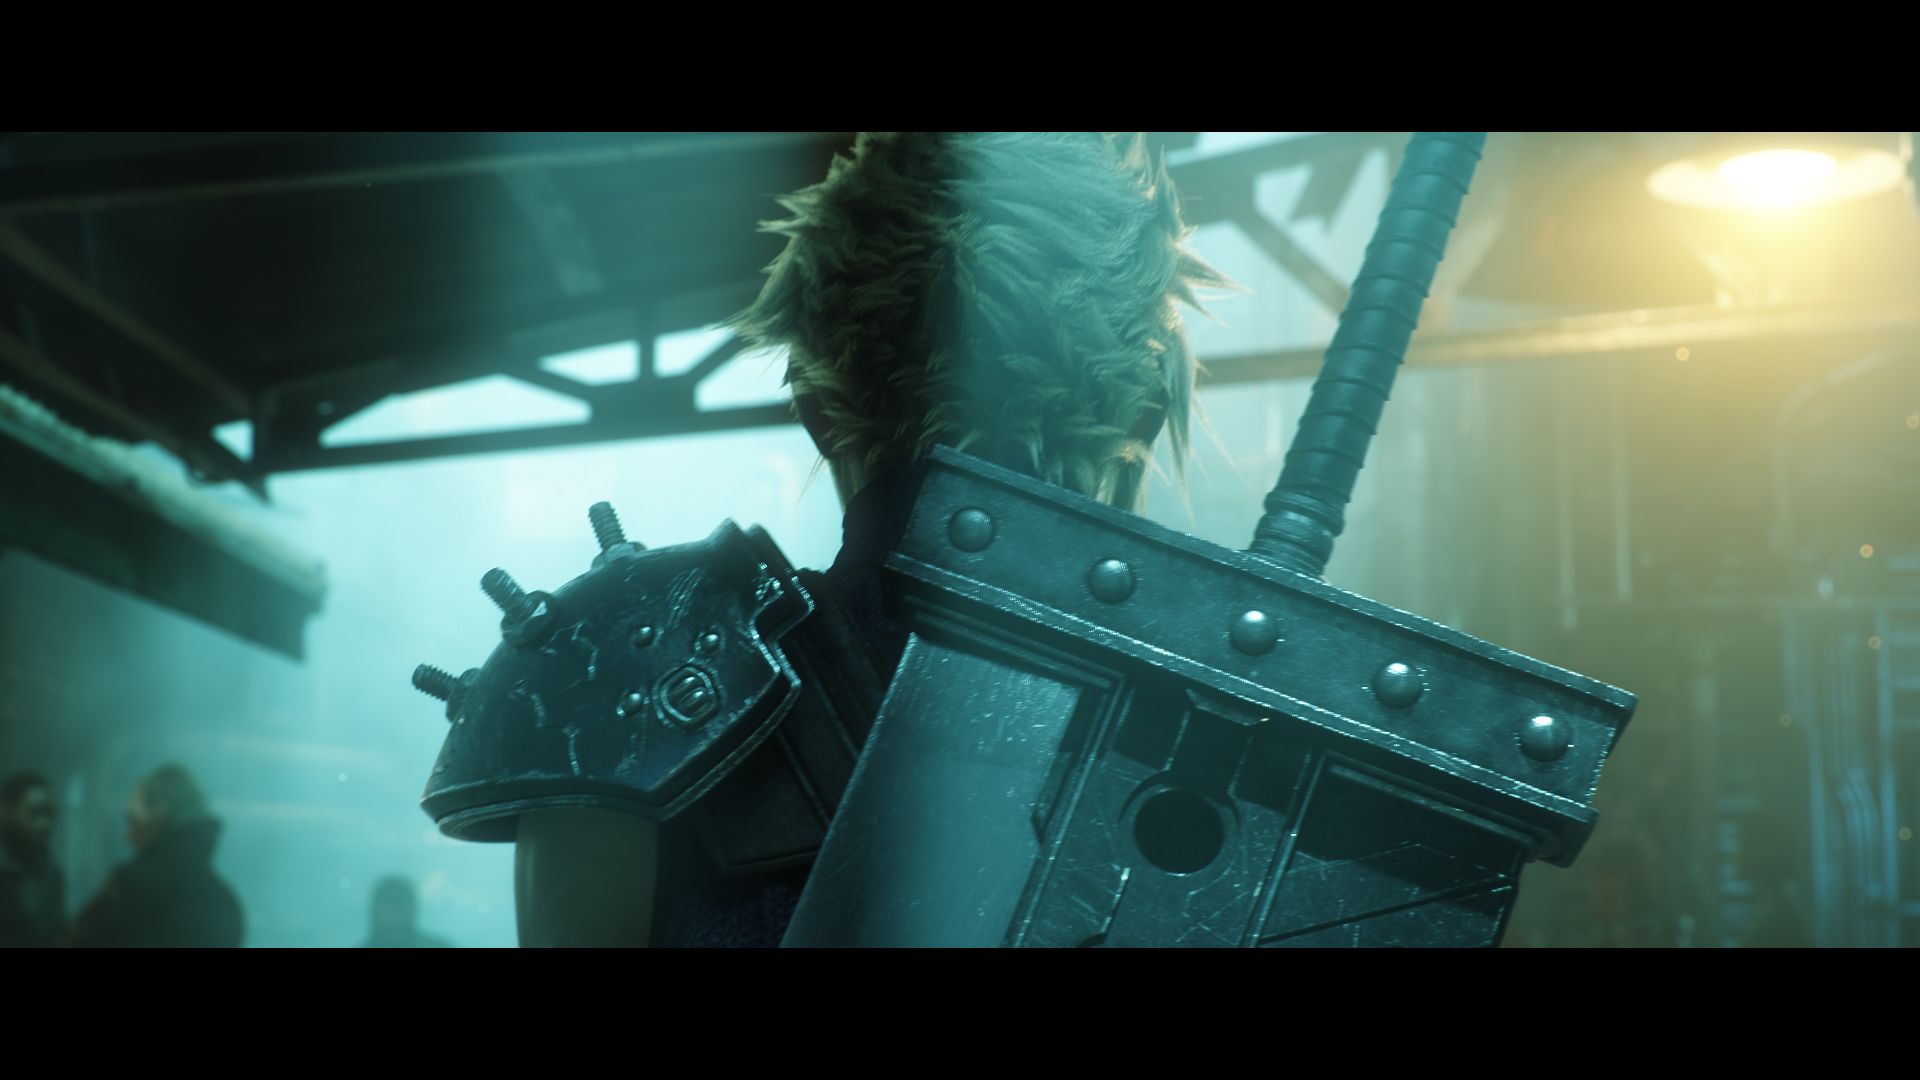 Final Fantasy VII Remake PS4 trailer screenshot